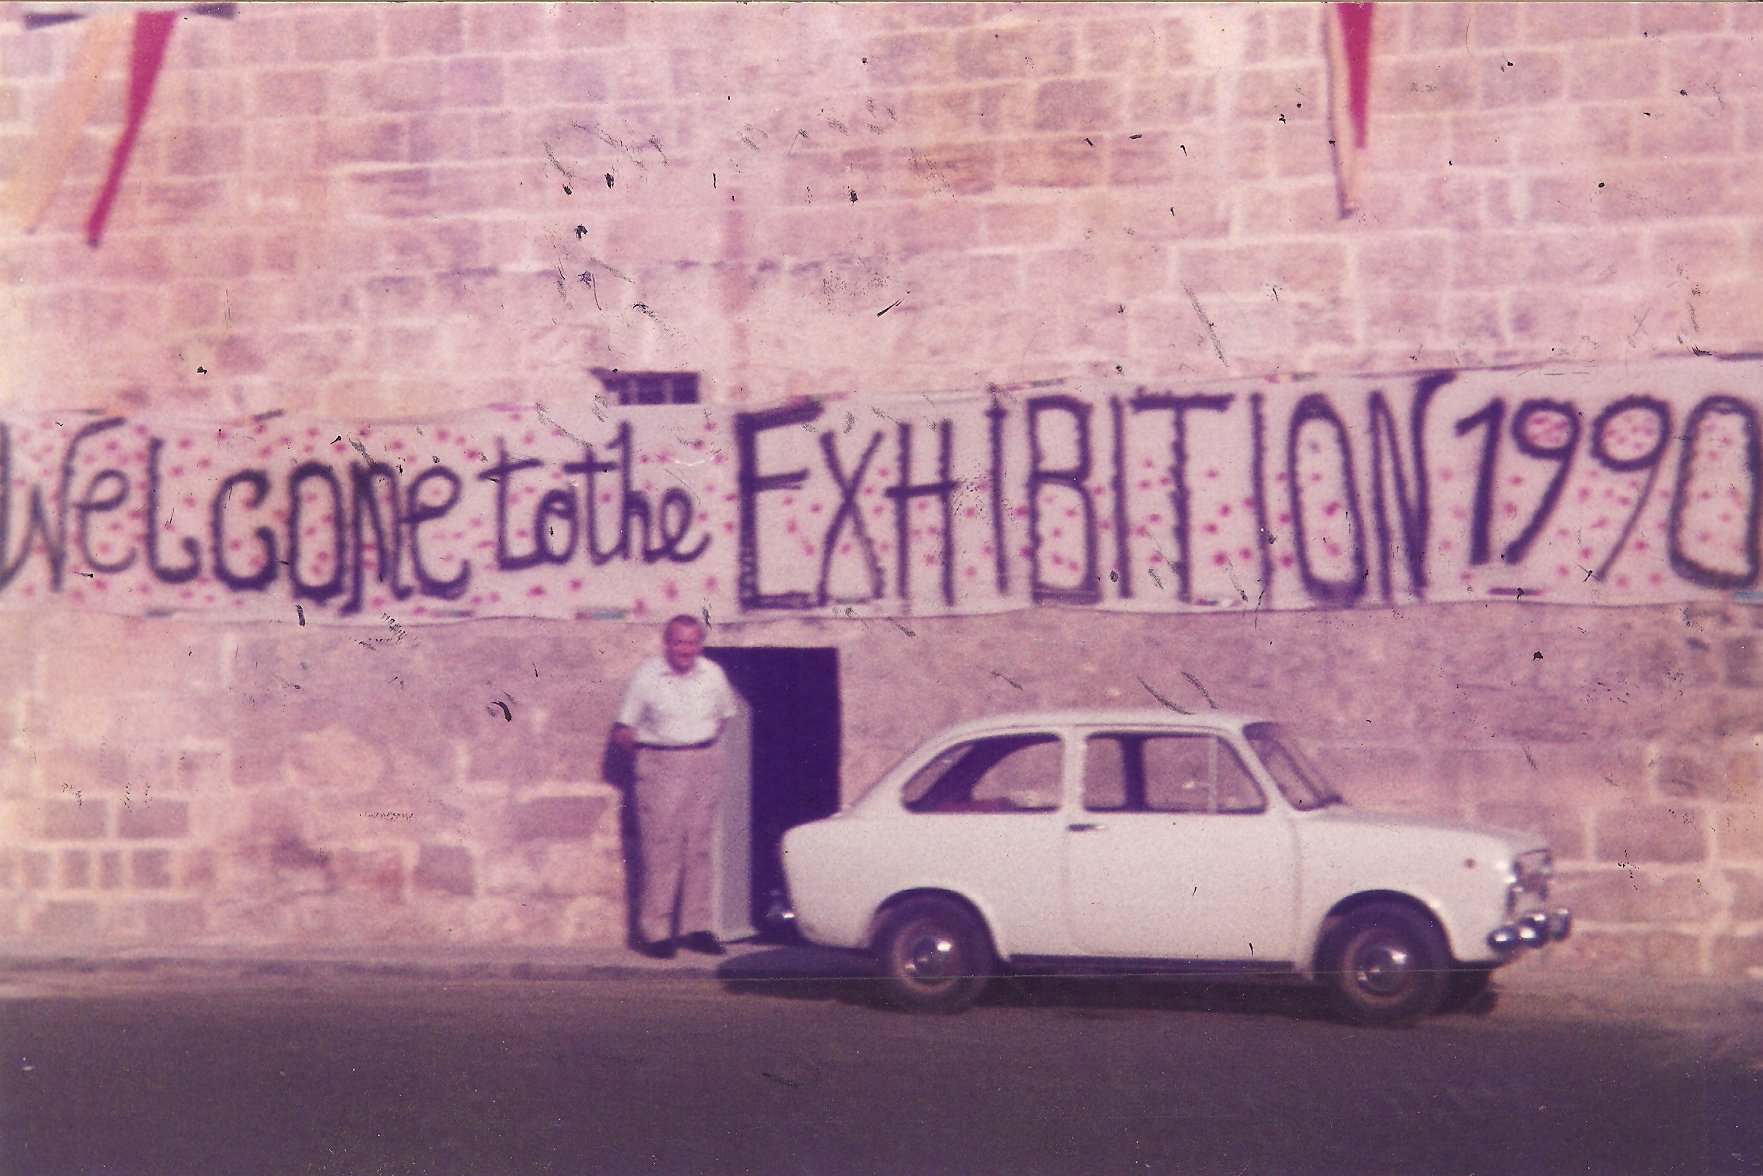 Photo showing the front of the Mill, with a large banner with the words 'Welcome to the Exhibition 1990' written on it. Gabriel Caruana stands below the banner next to the door. A white car is parked adjacent.